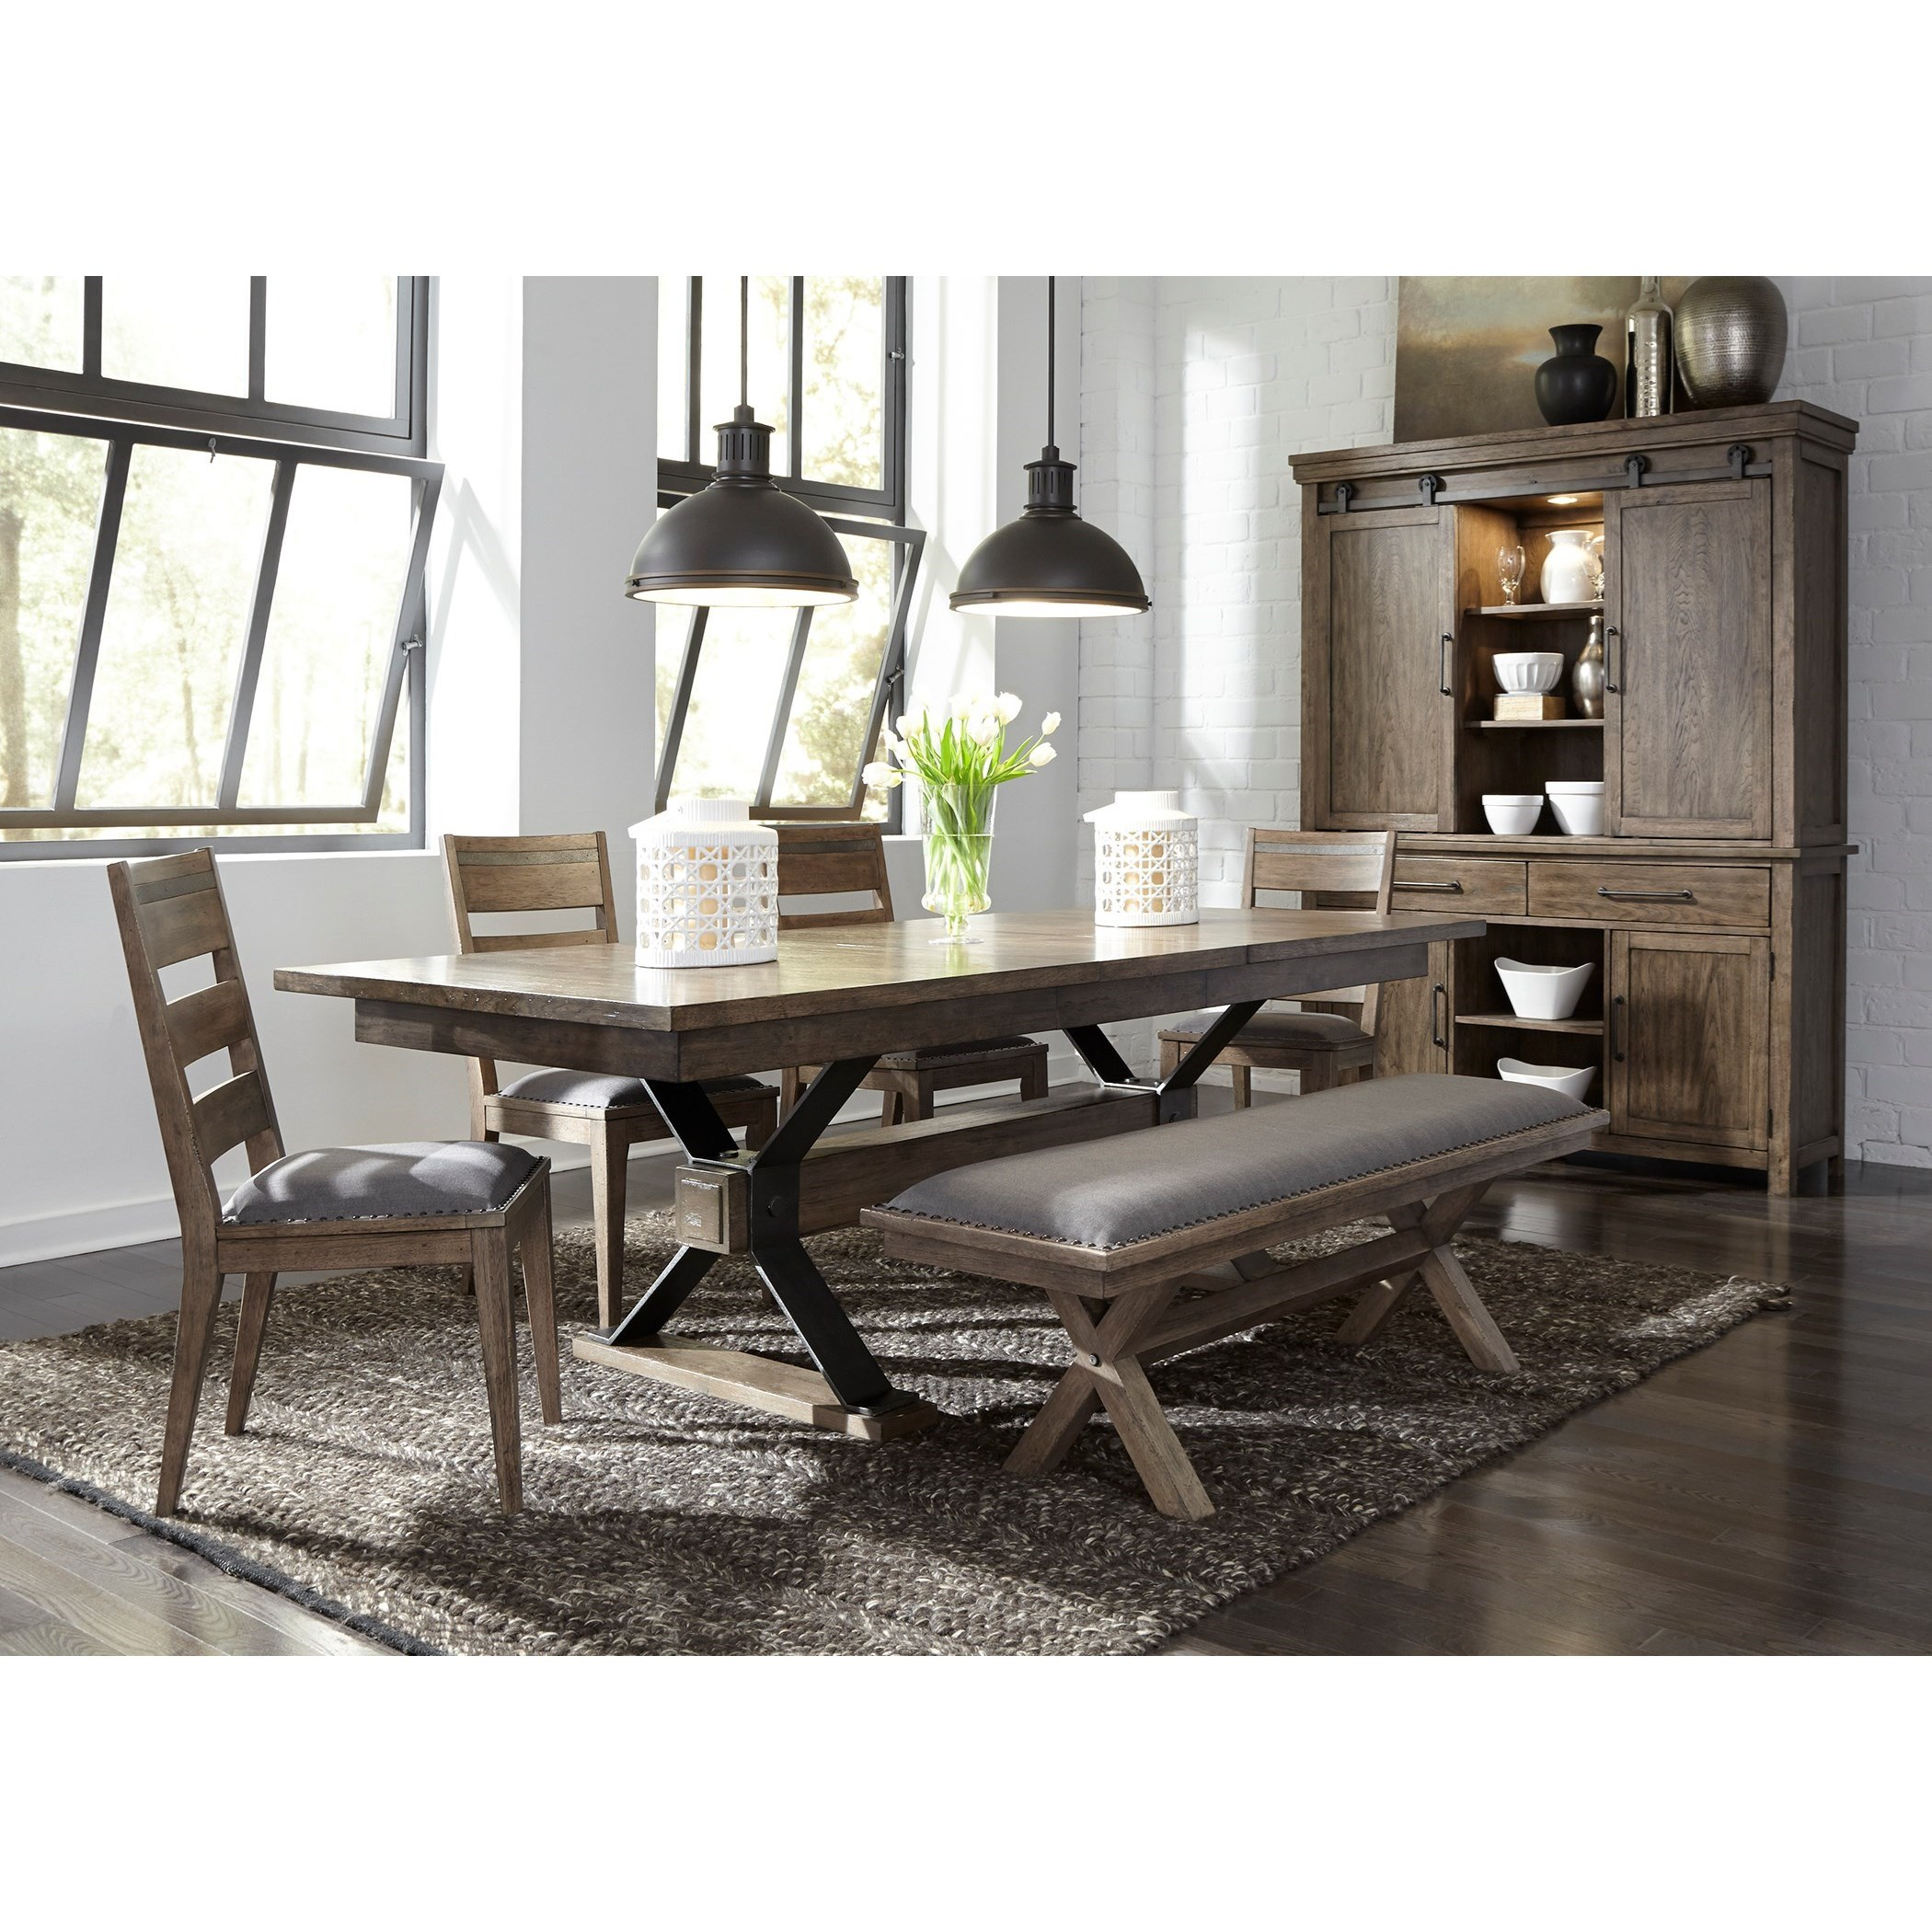 Sonoma Road Dining Room Group by Liberty Furniture at Suburban Furniture